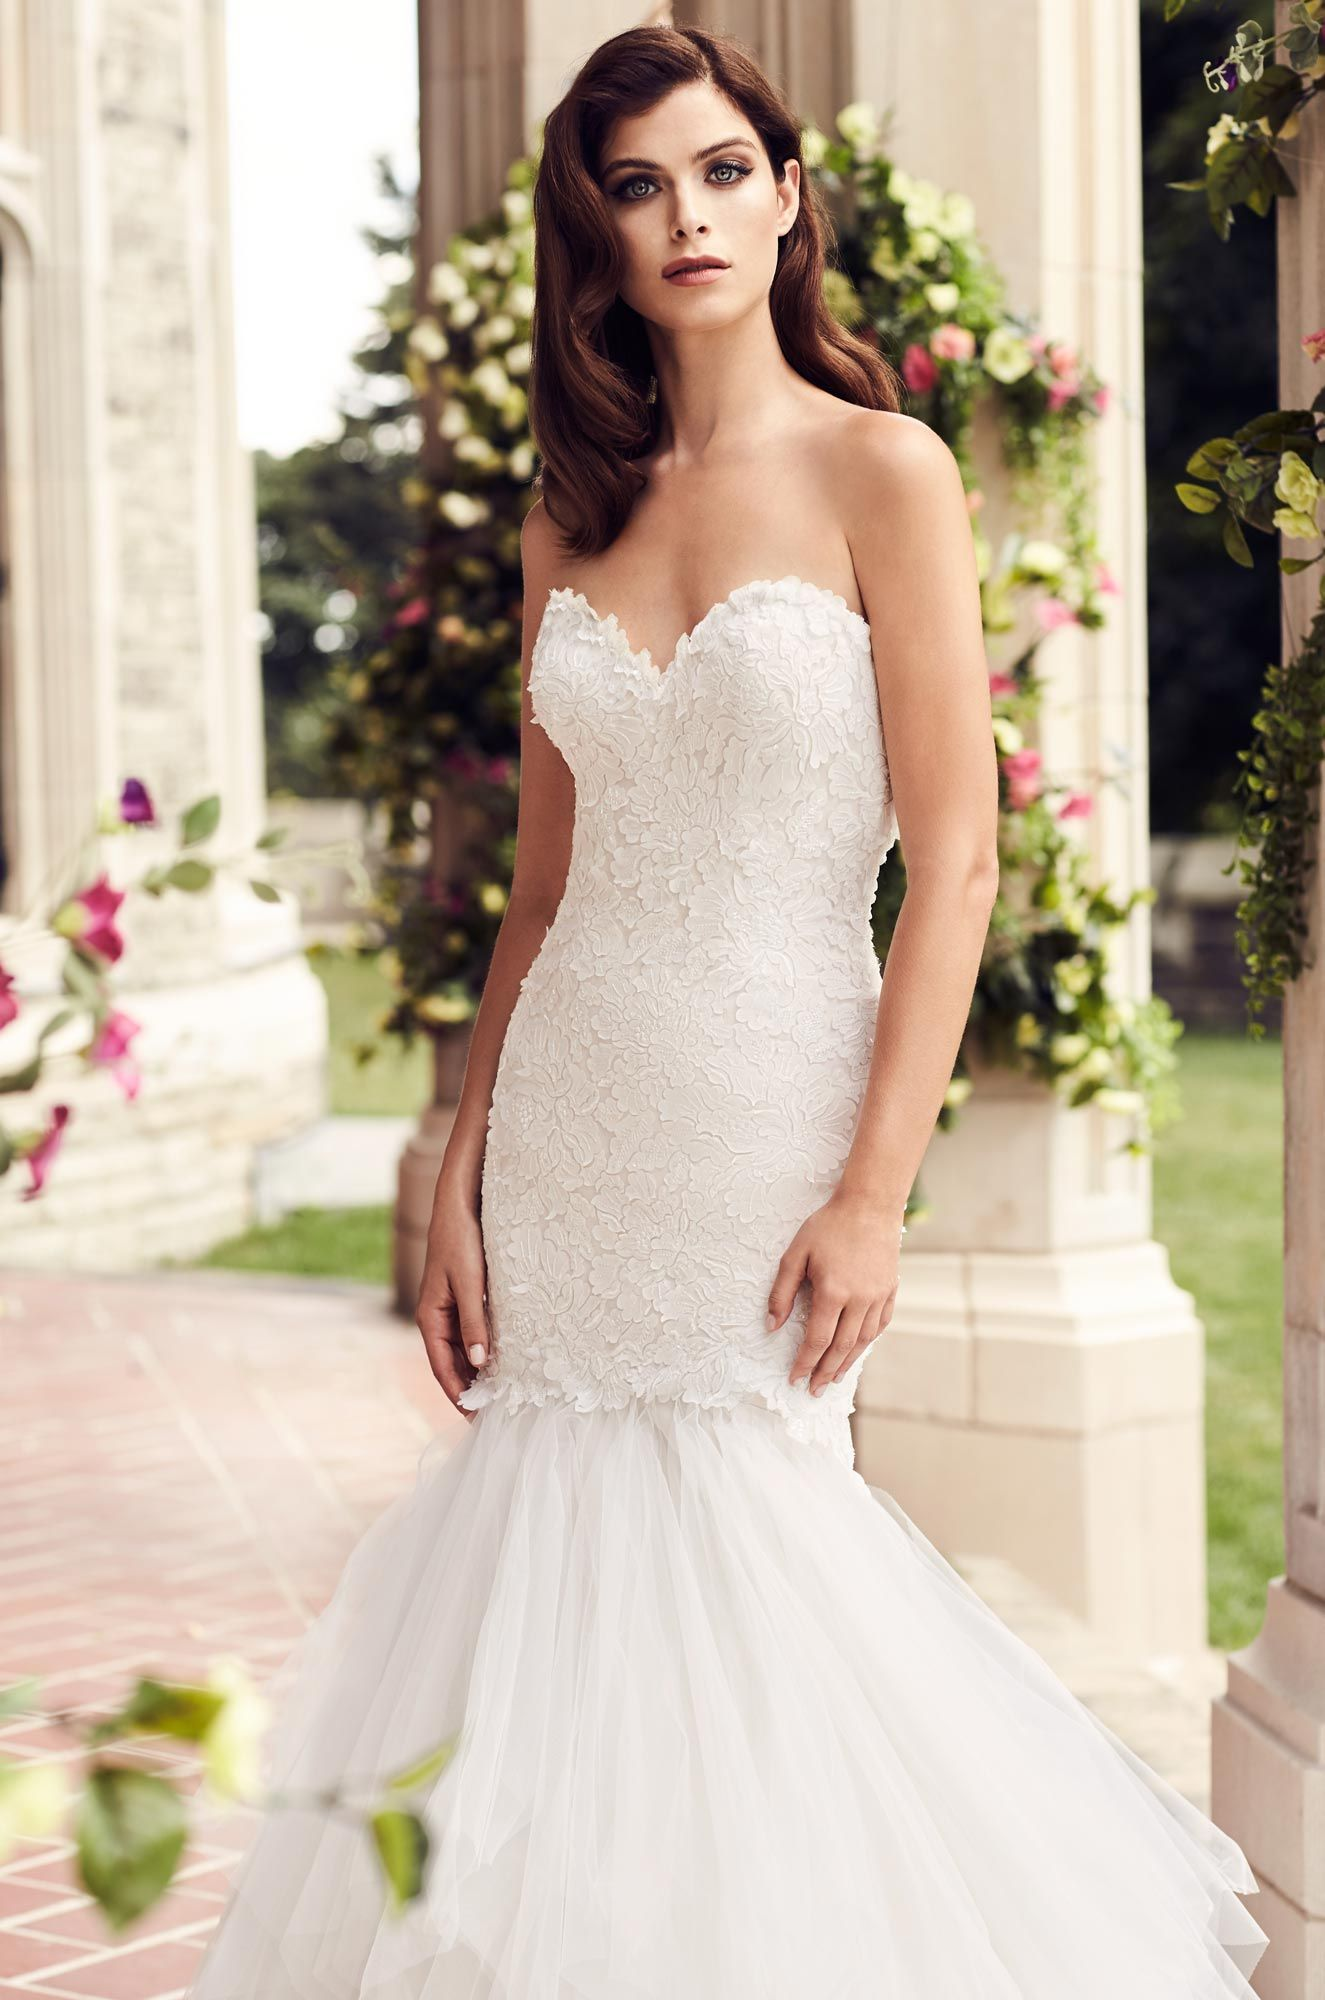 Lace dress styles for wedding  Fitted Laser Cut Lace Wedding Dress  Style   Laser cutting